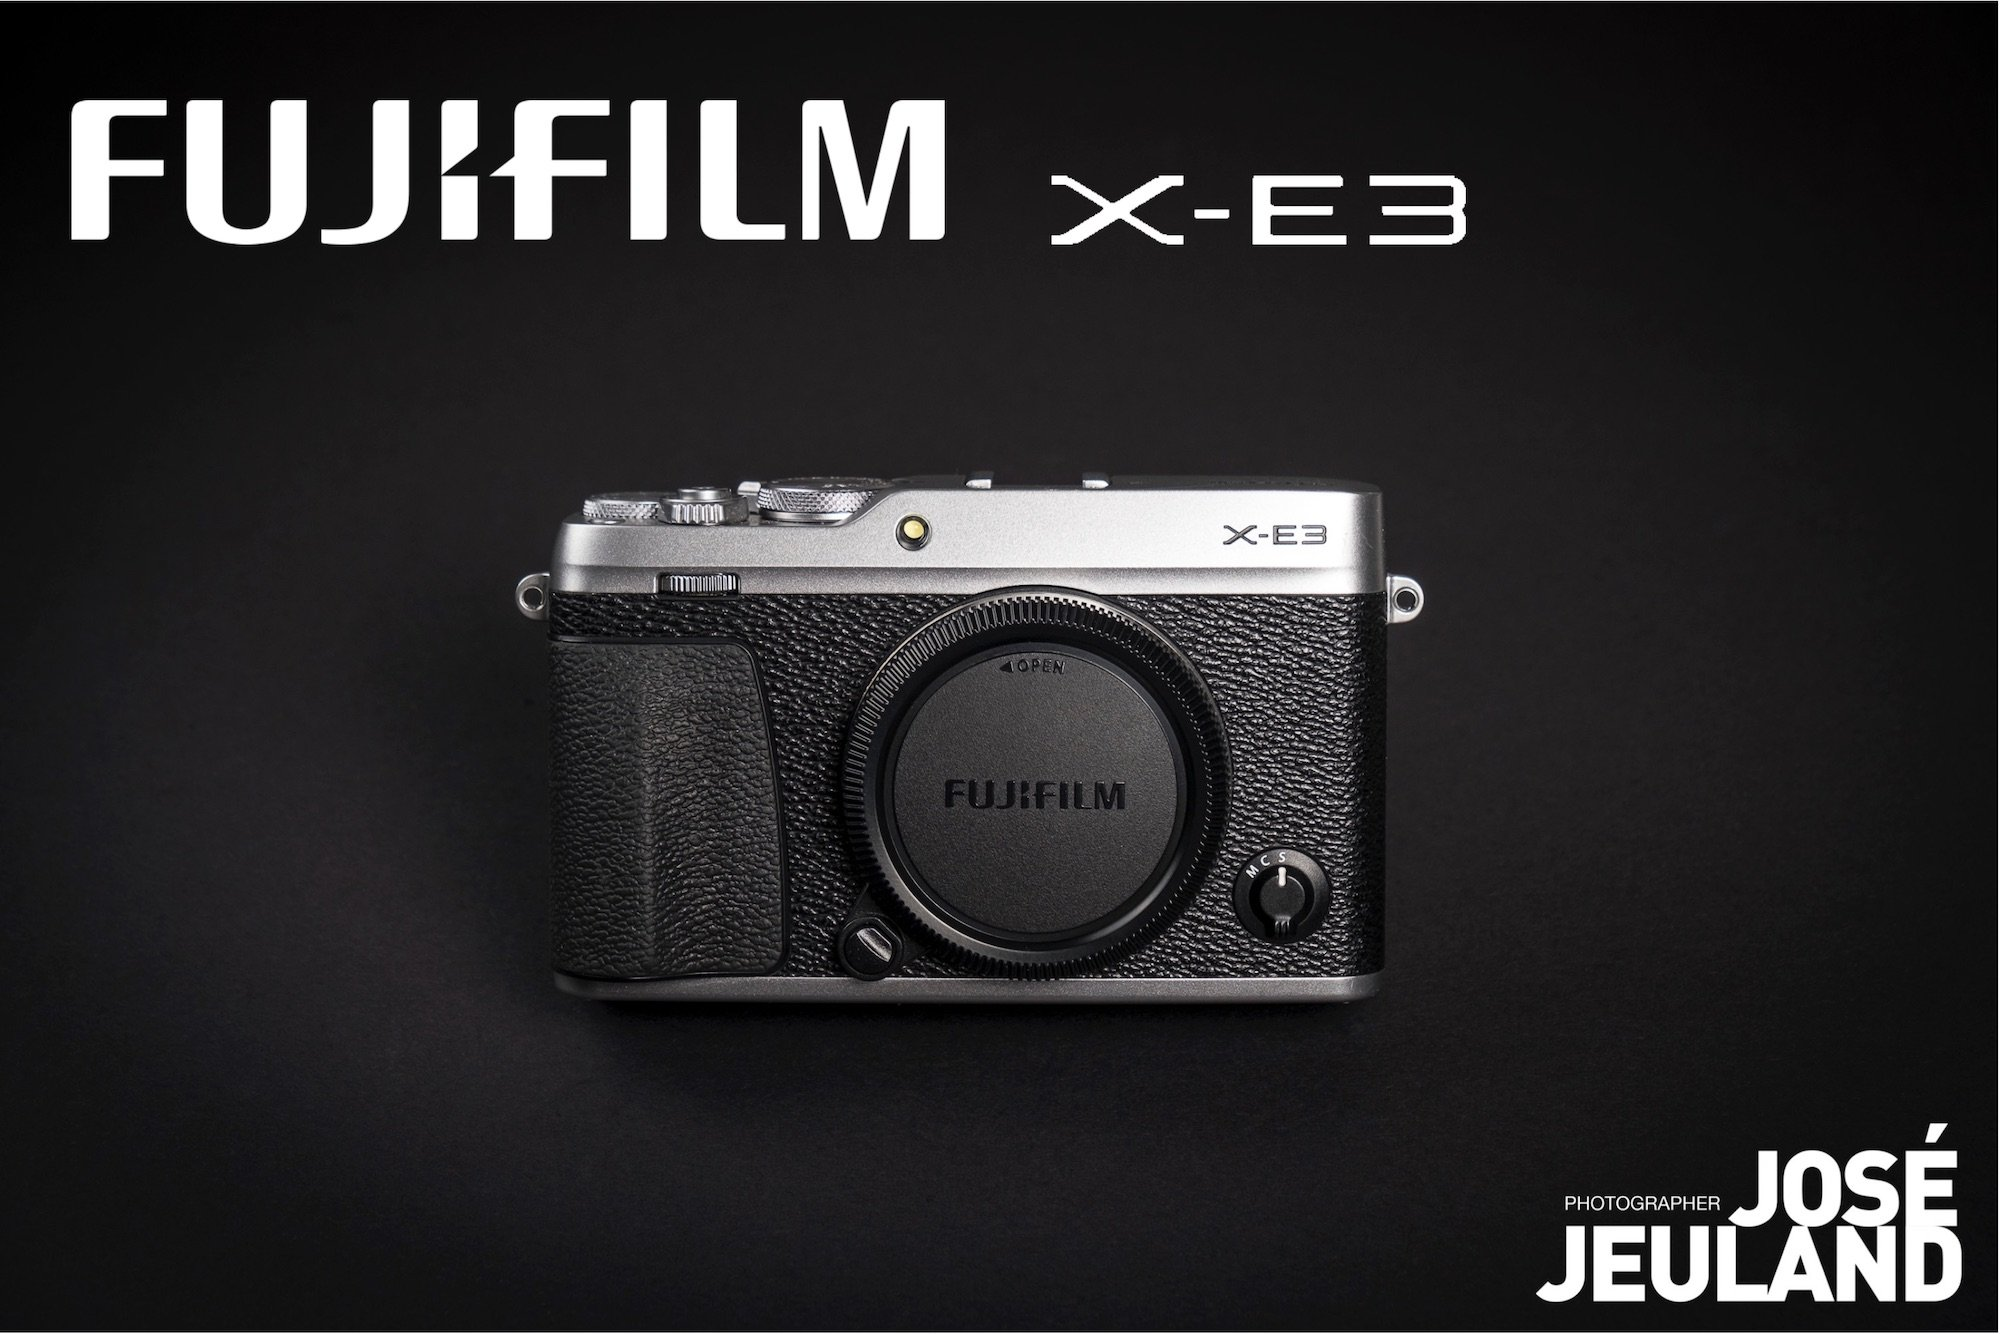 Review of the FUJIFILM X-E3